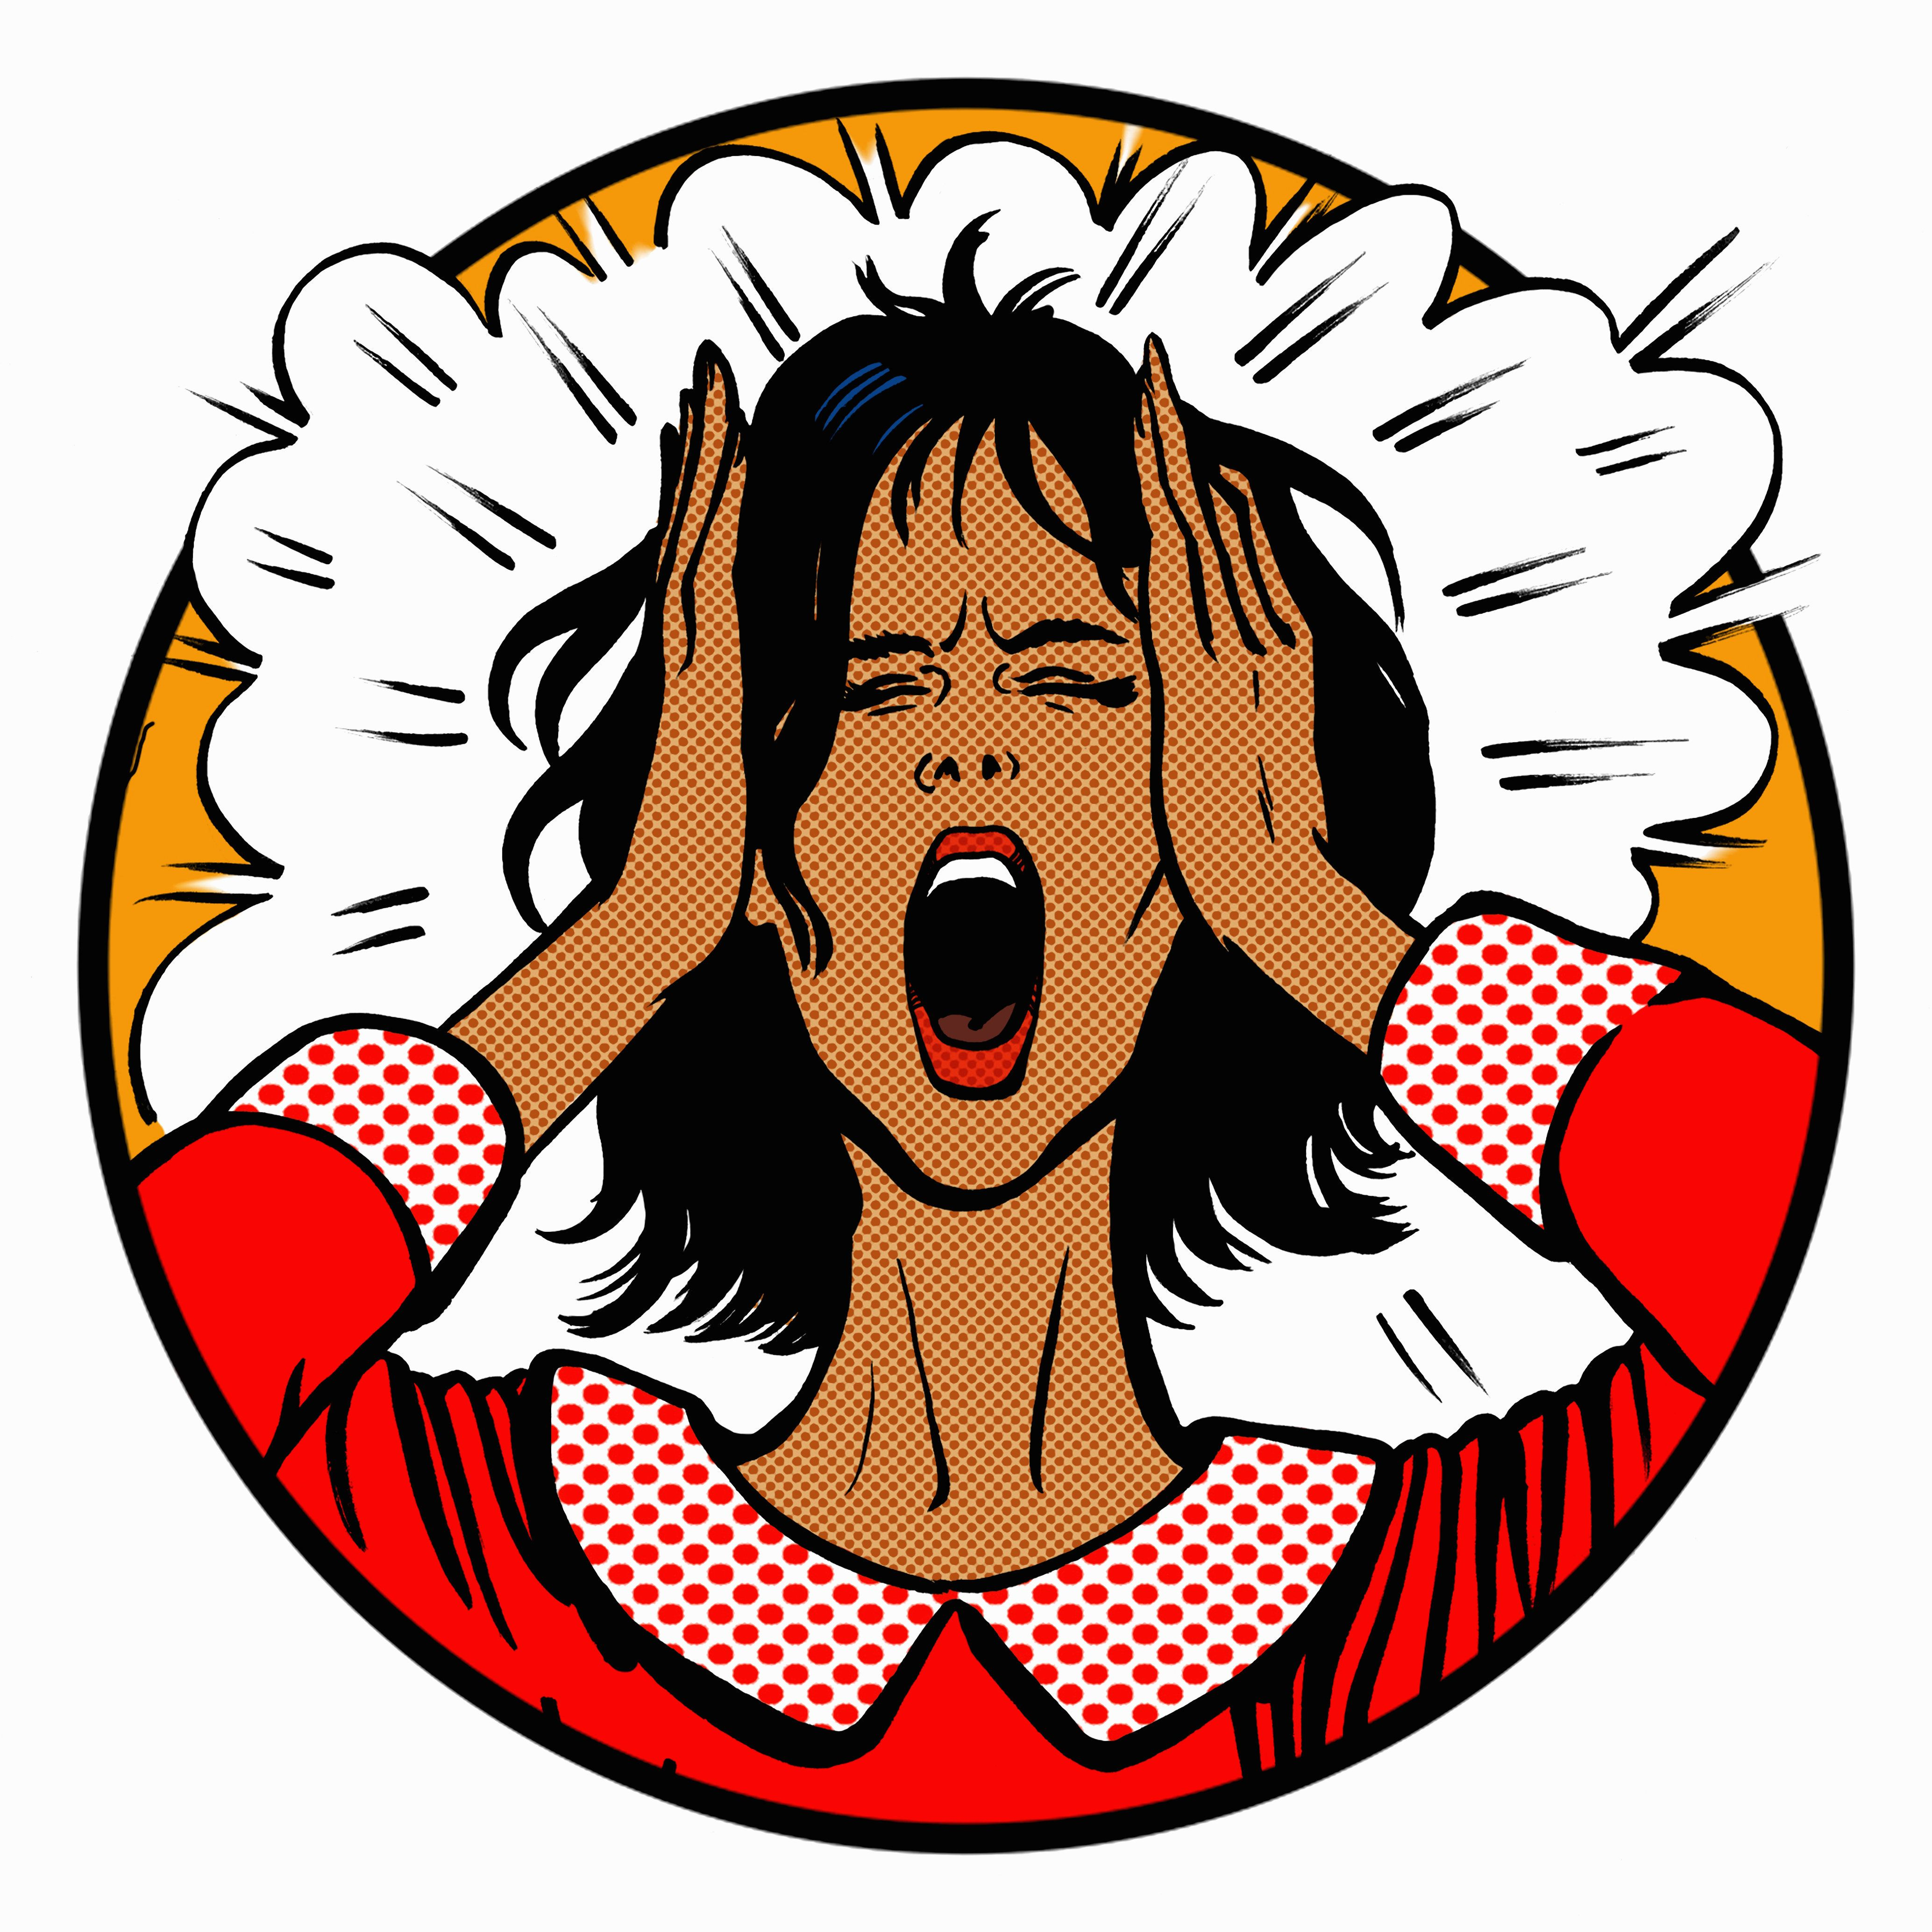 Close up of face of woman screaming with head in hands